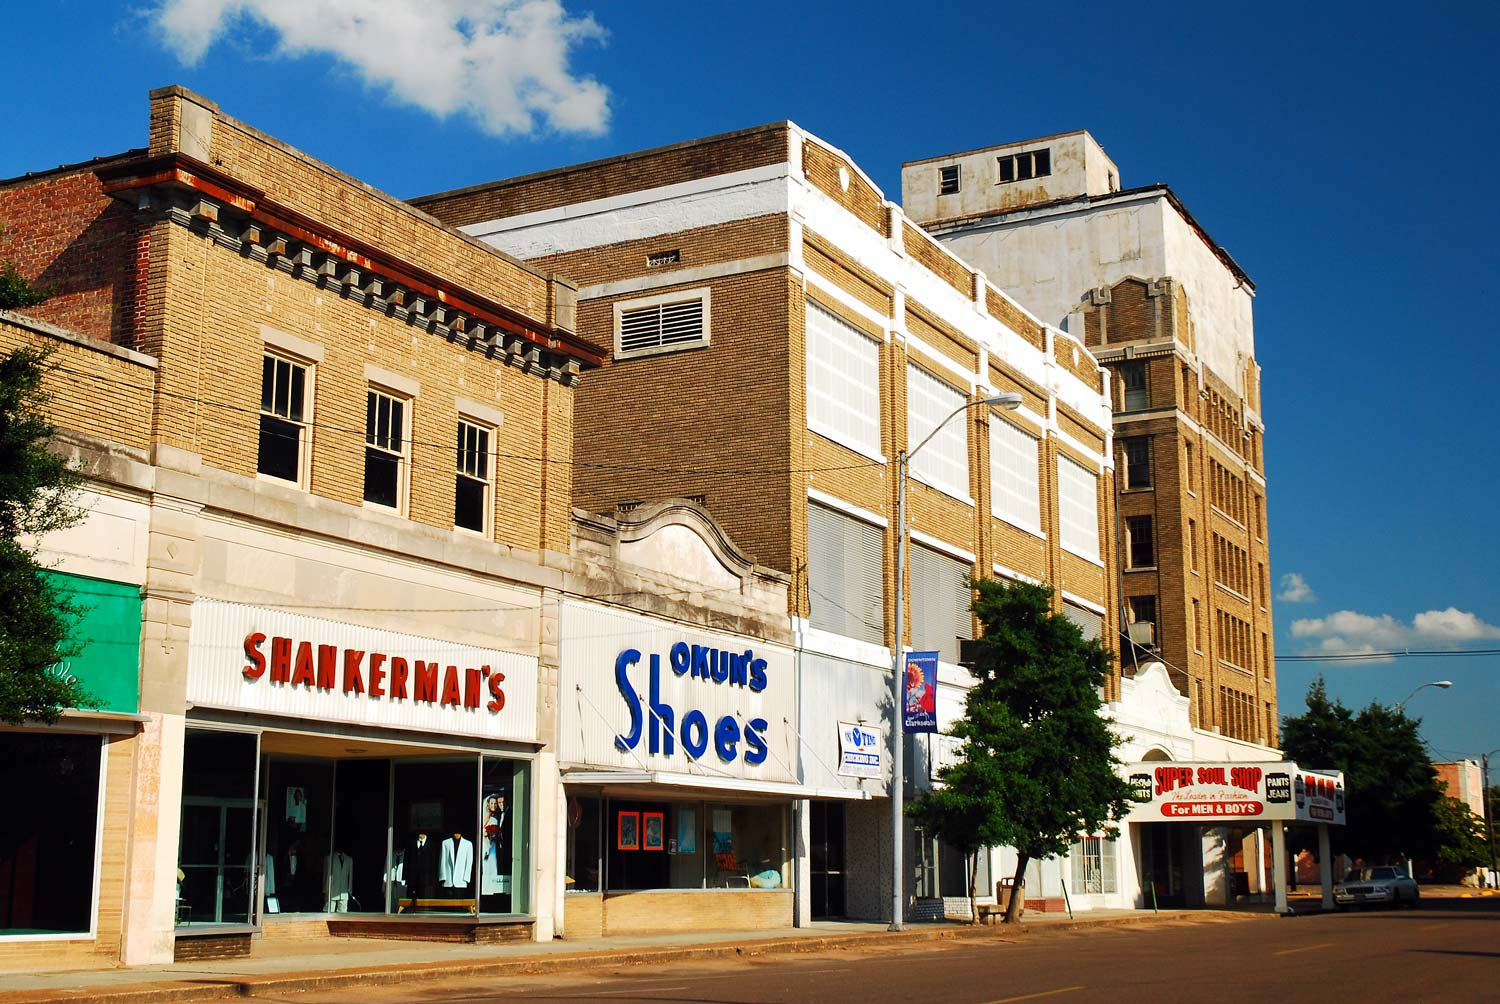 Downtown buildings in Clarksdale, Mississippi